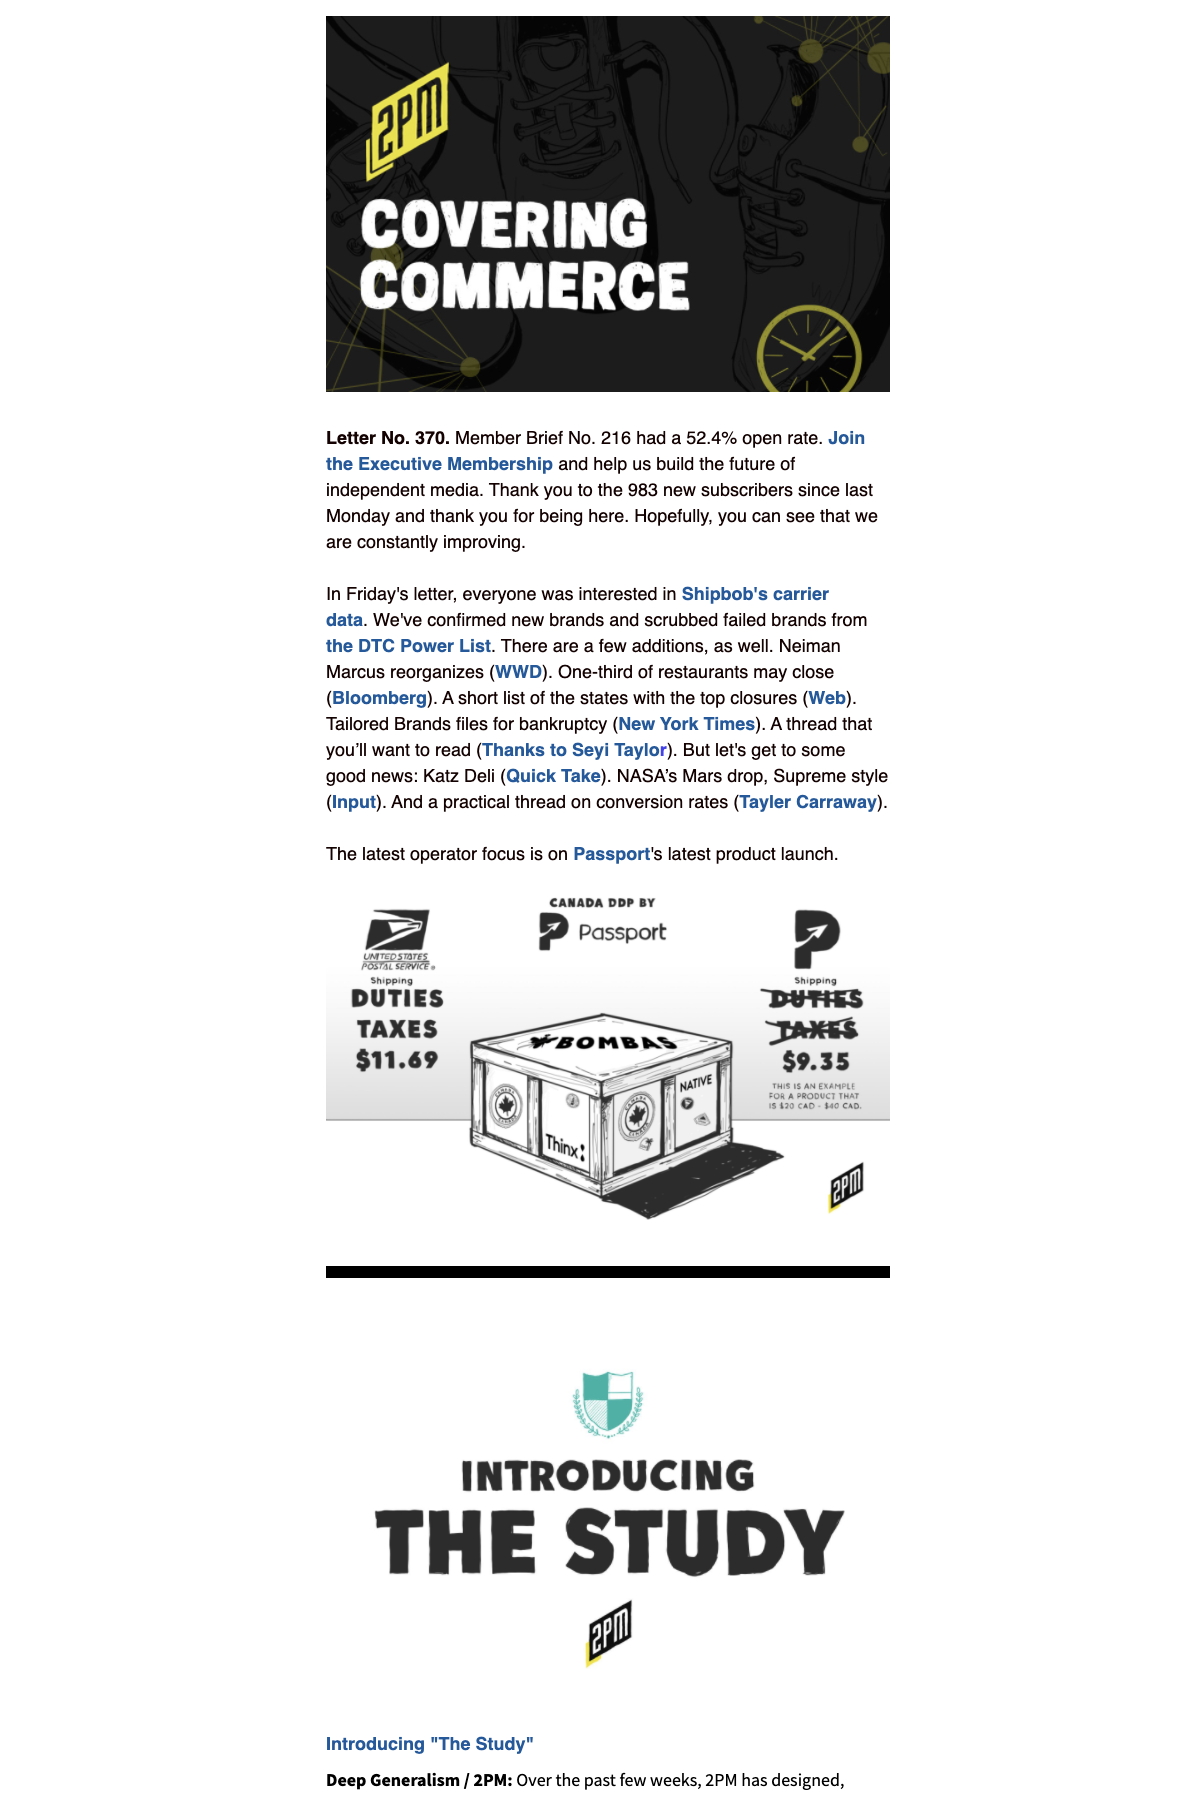 The Monday, Wednesday, and Friday newsletters are the core of 2PM Inc: an industry-leading source that analyzes the intersection of media and commerce and how those principles are applied elsewhere.